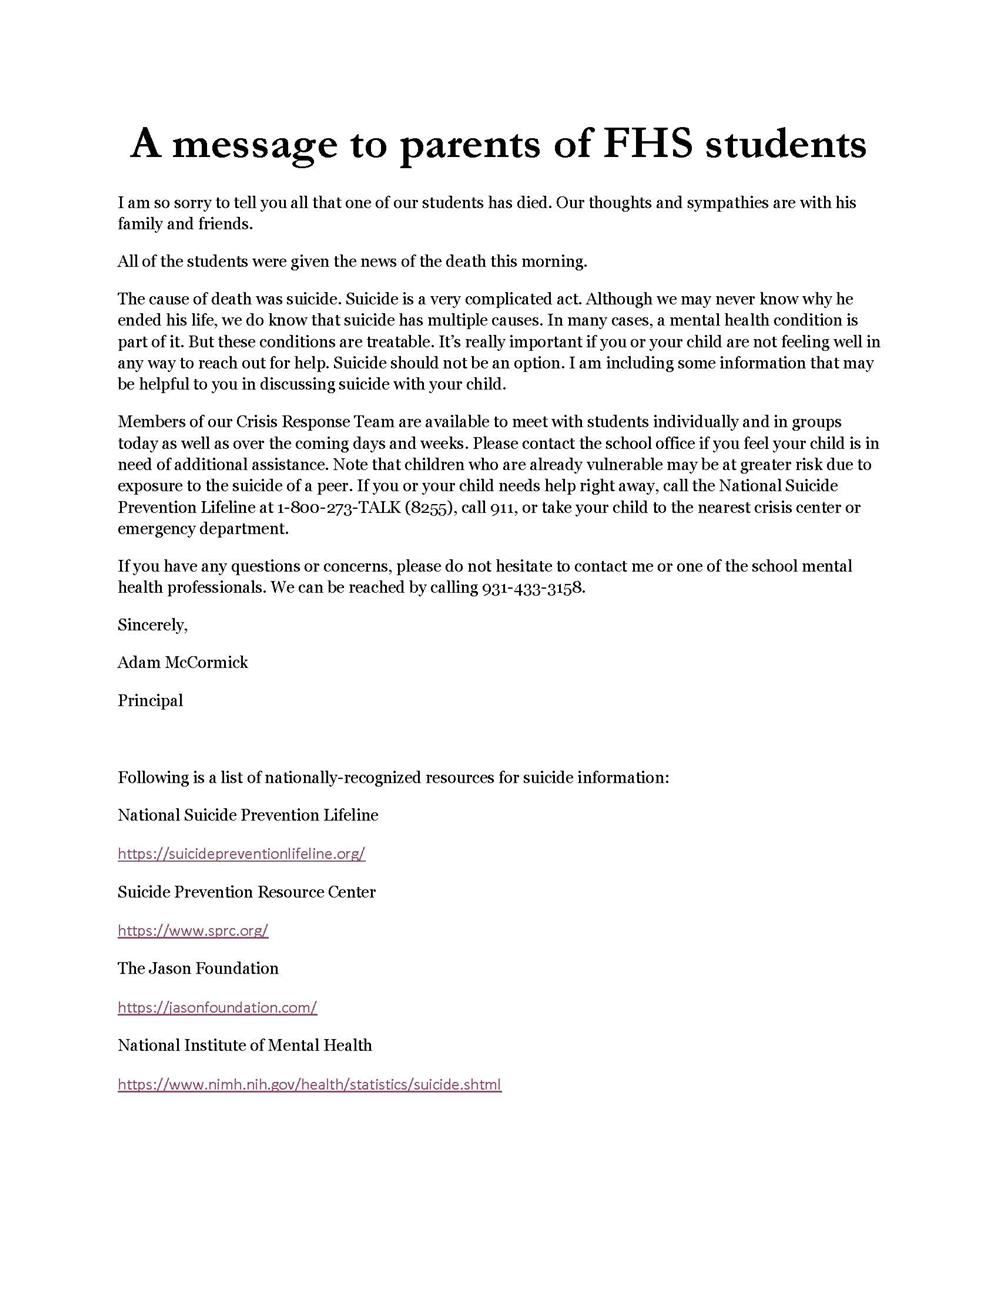 press release on message to parents